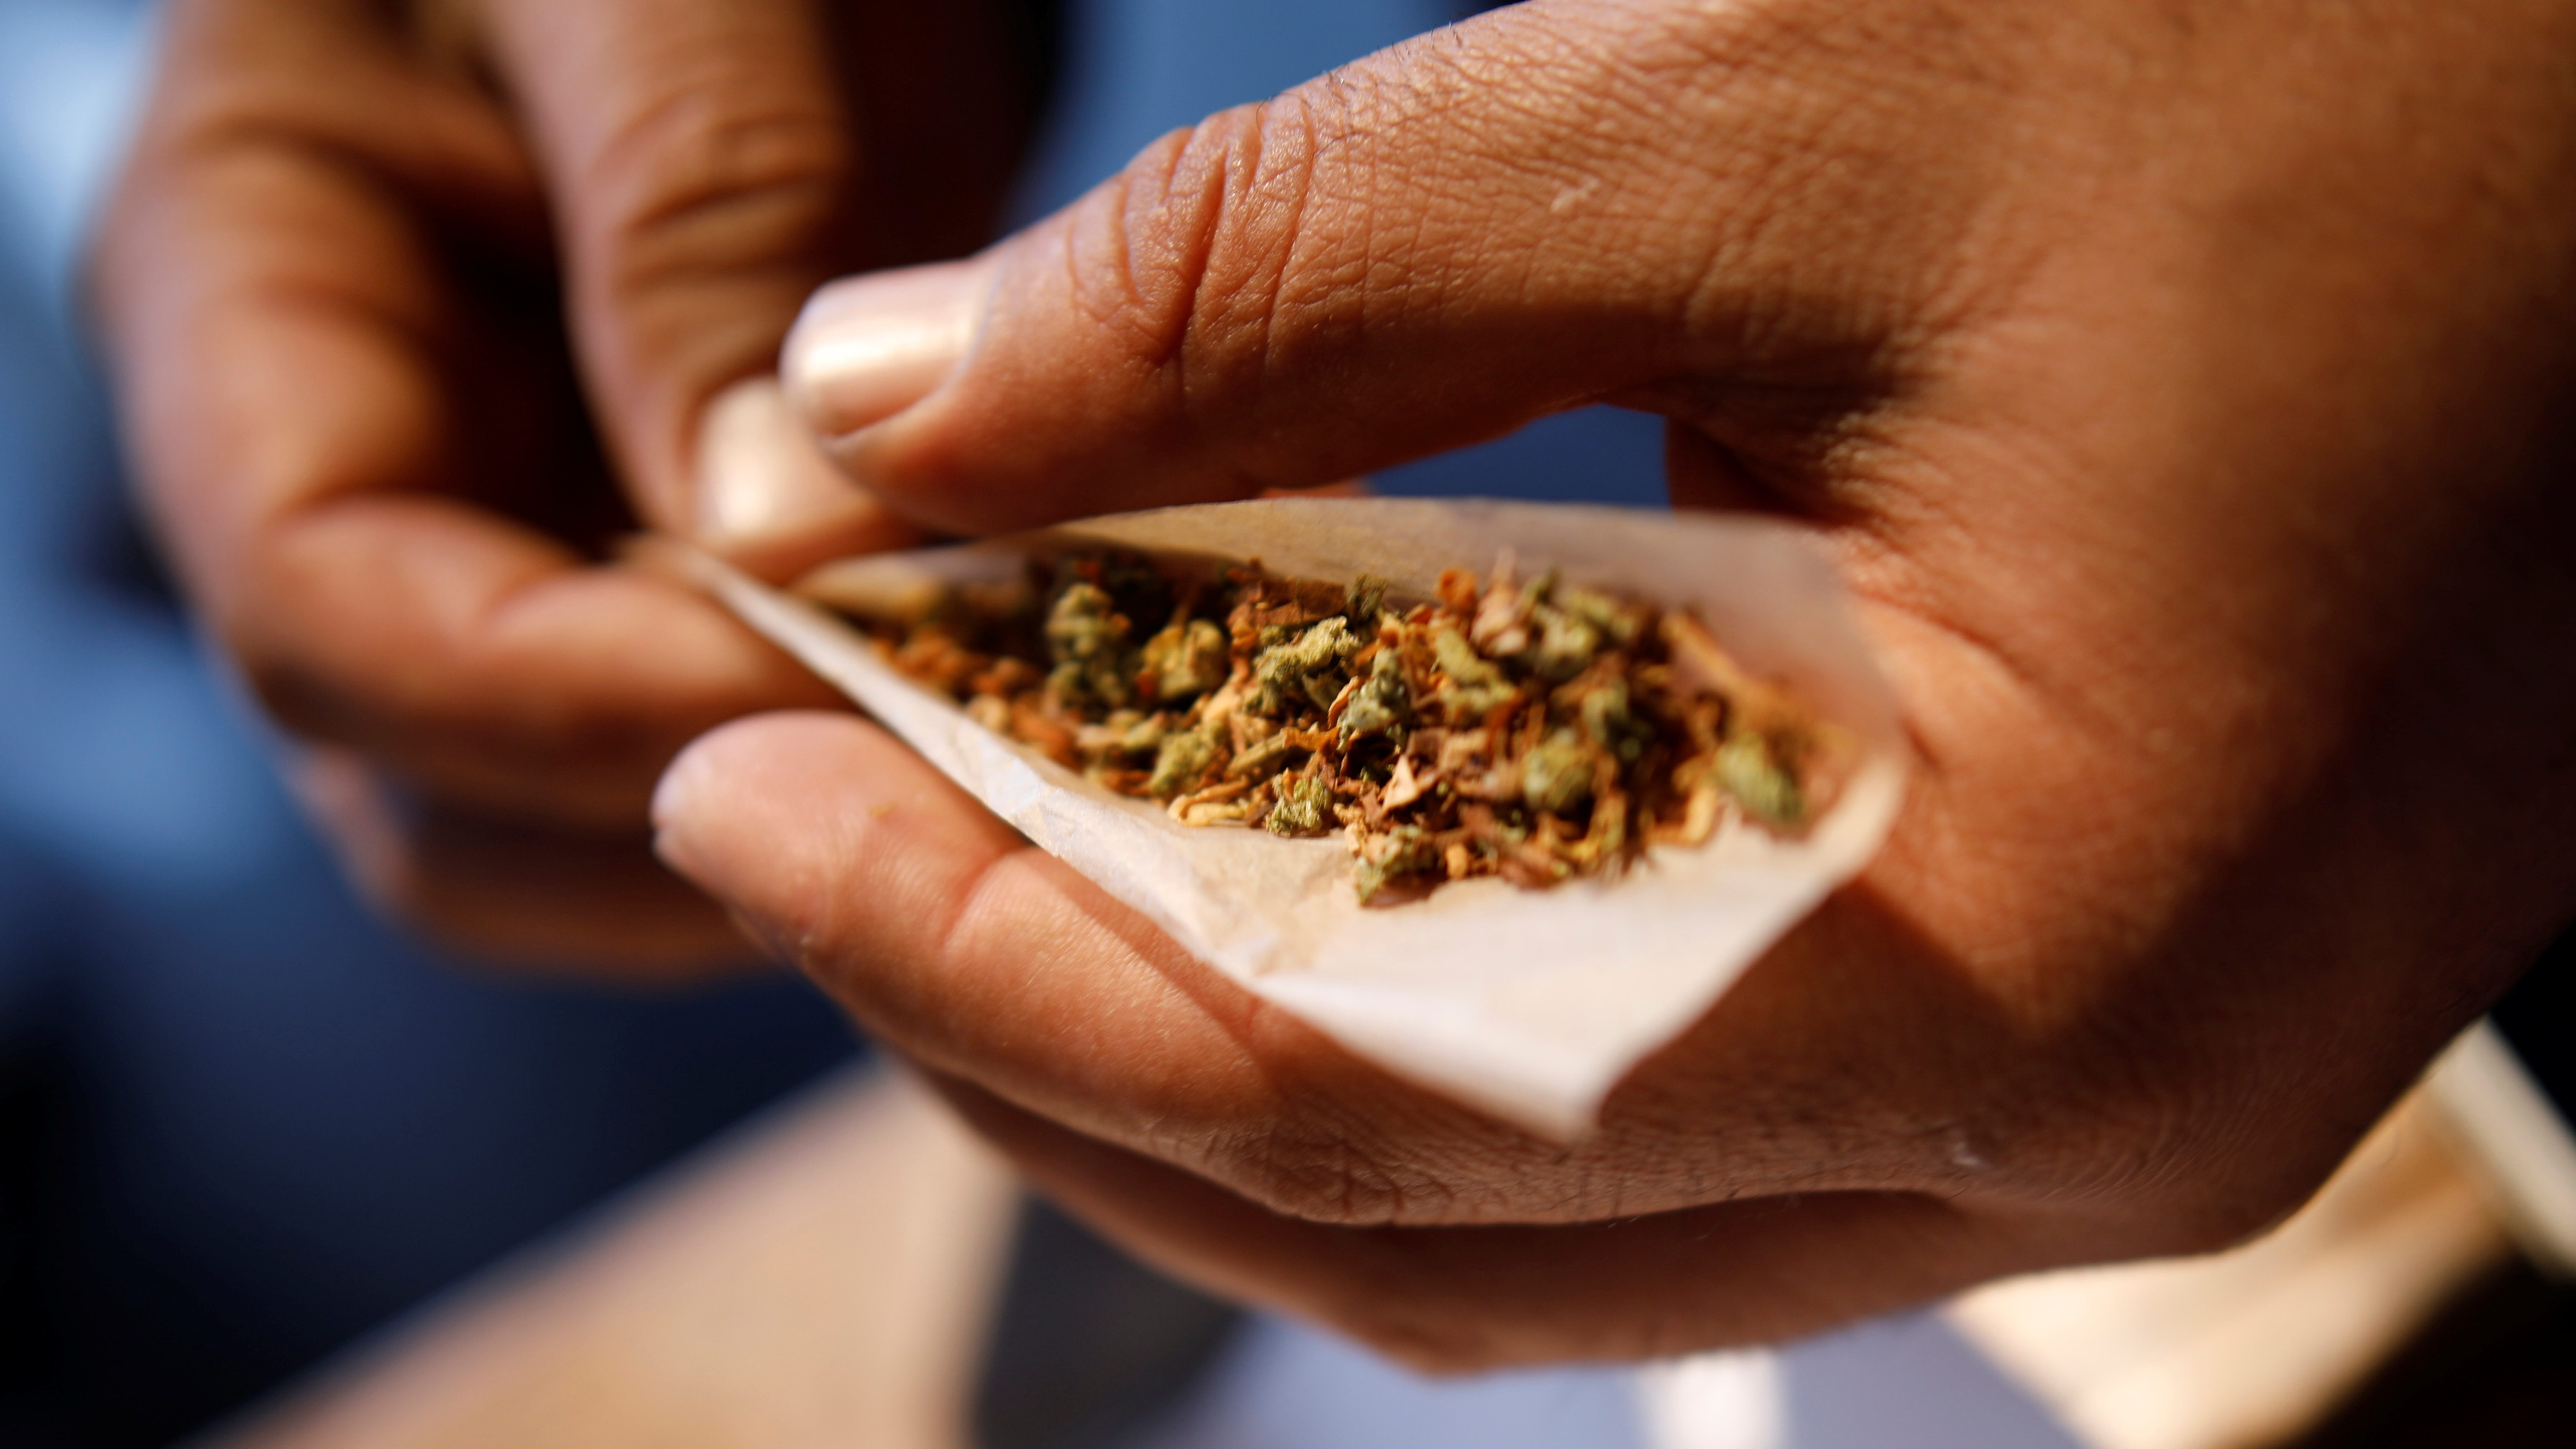 A man prepares a cigarette mixed with marijuana during Cannatech 2017, an annual global cannabis industry event, in Tel Aviv, Israel